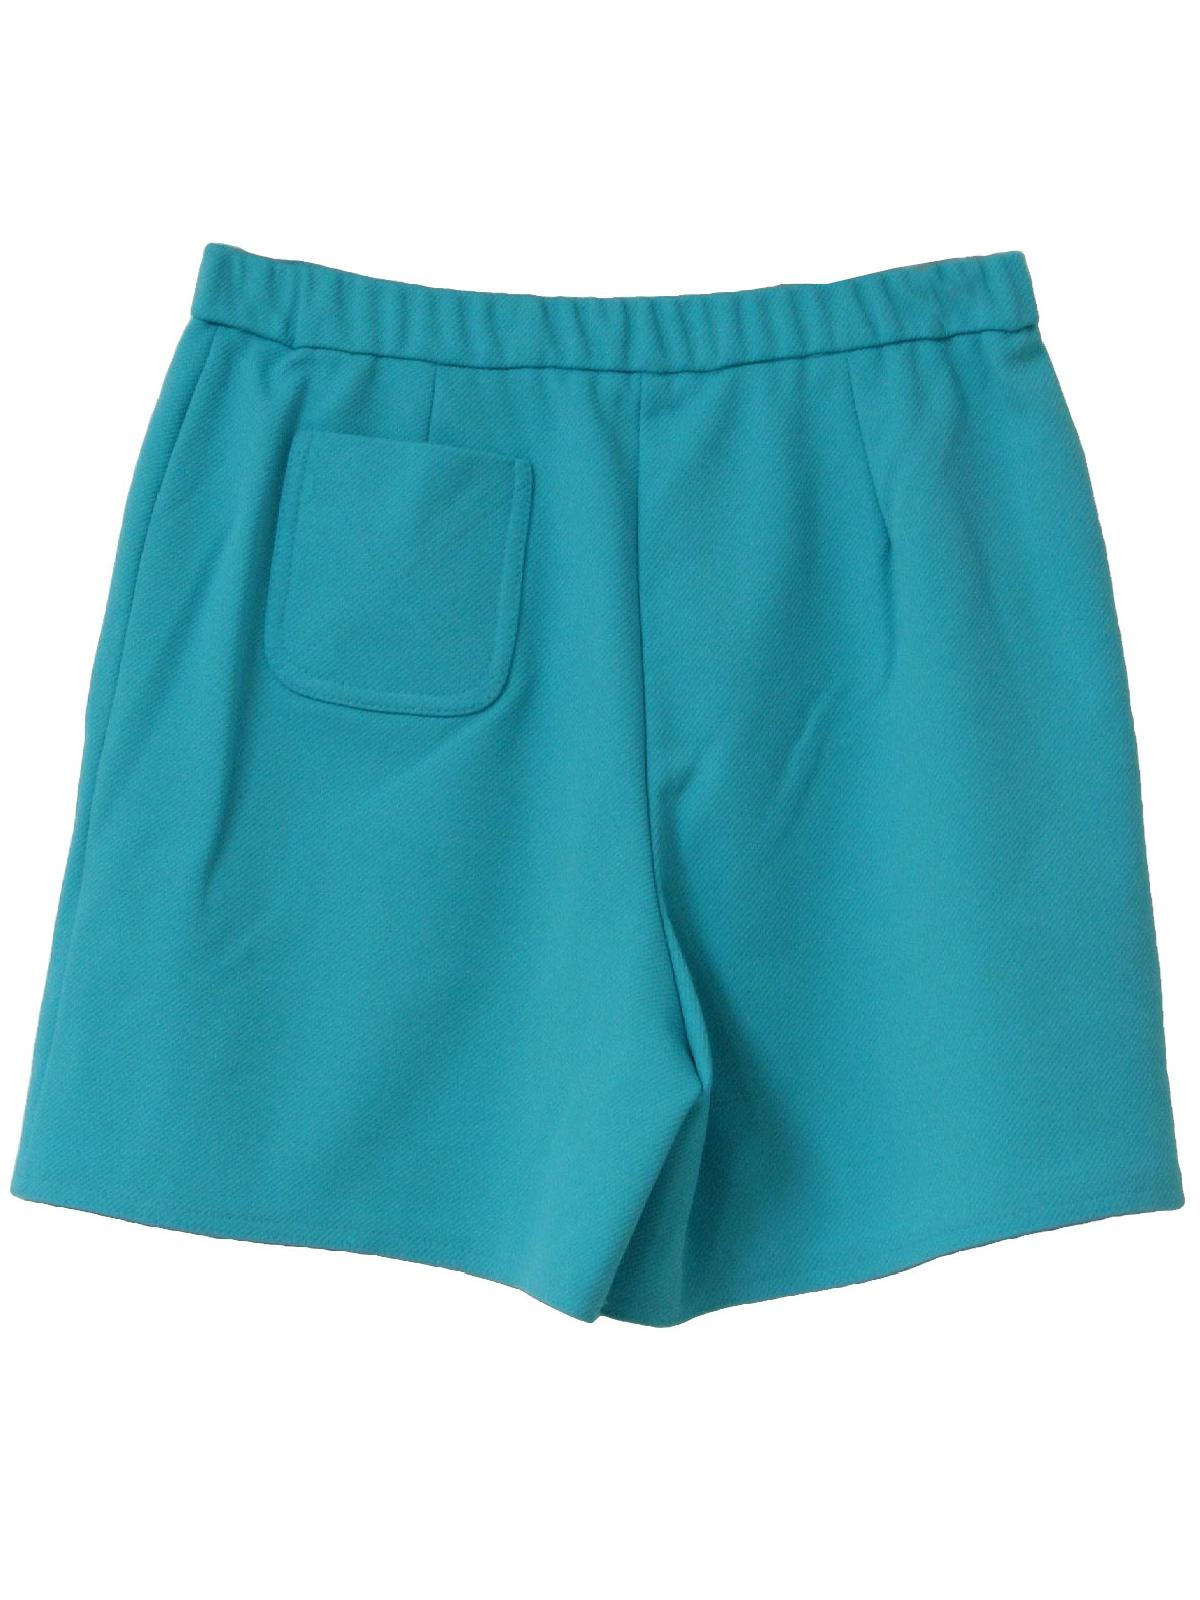 Elastic Waist Ladies Shorts - The Else